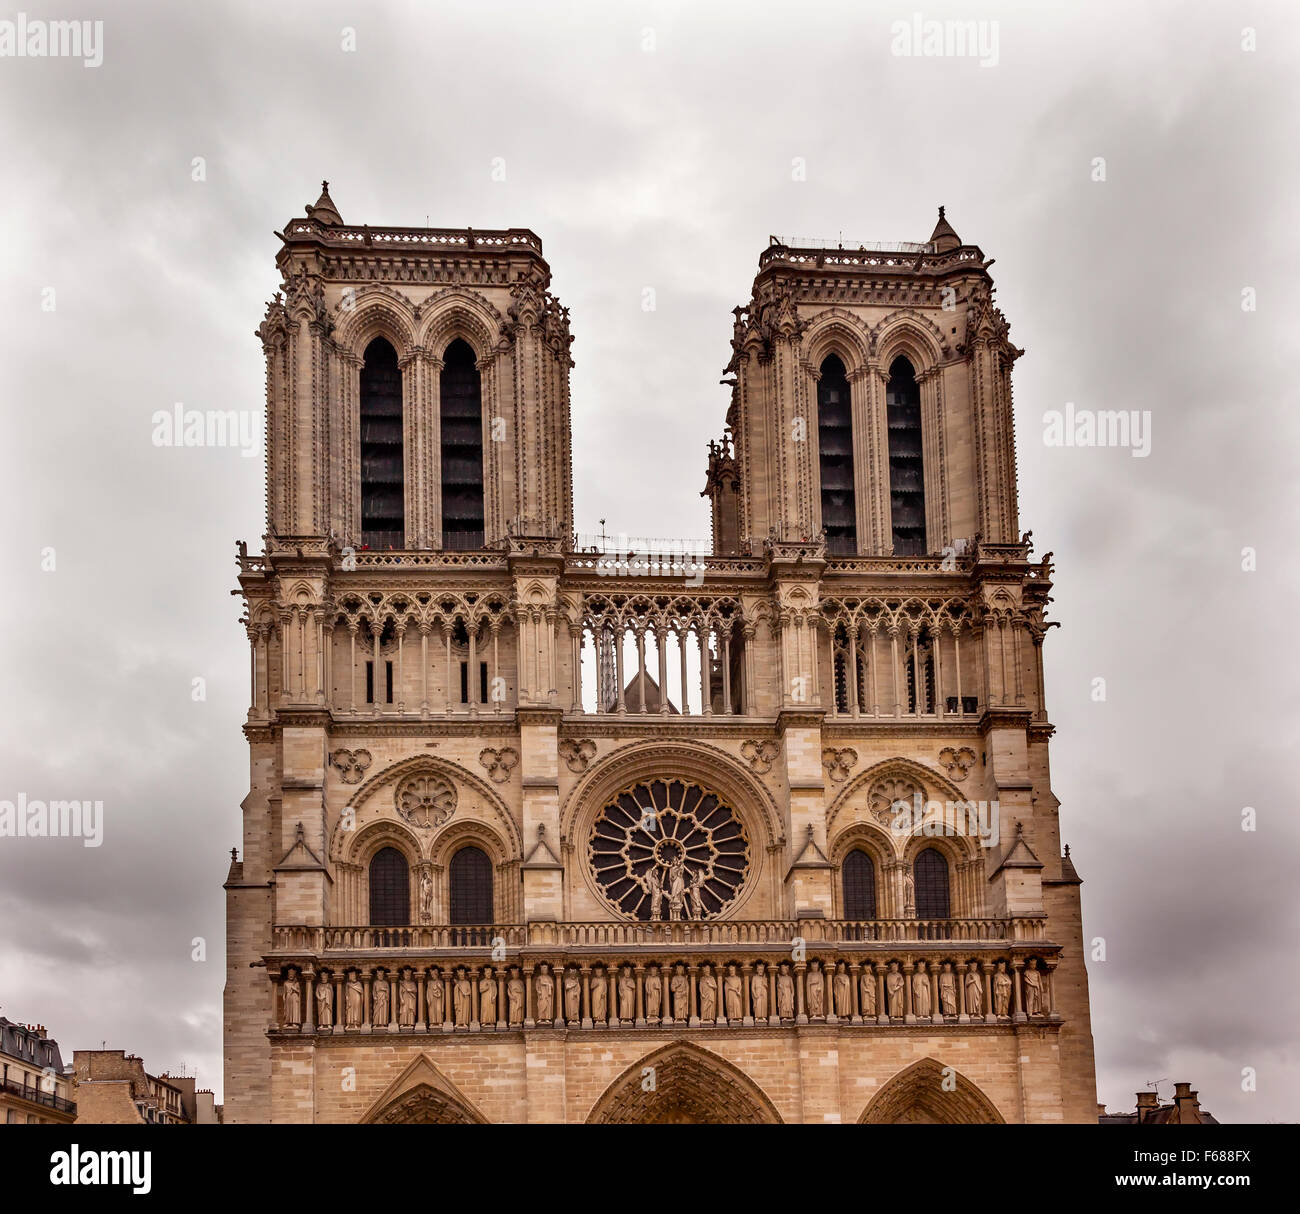 Facade Towers Overcast Skies Notre Dame Cathedral Paris France.  Notre Dame was built between 1163 and 1250 AD. - Stock Image